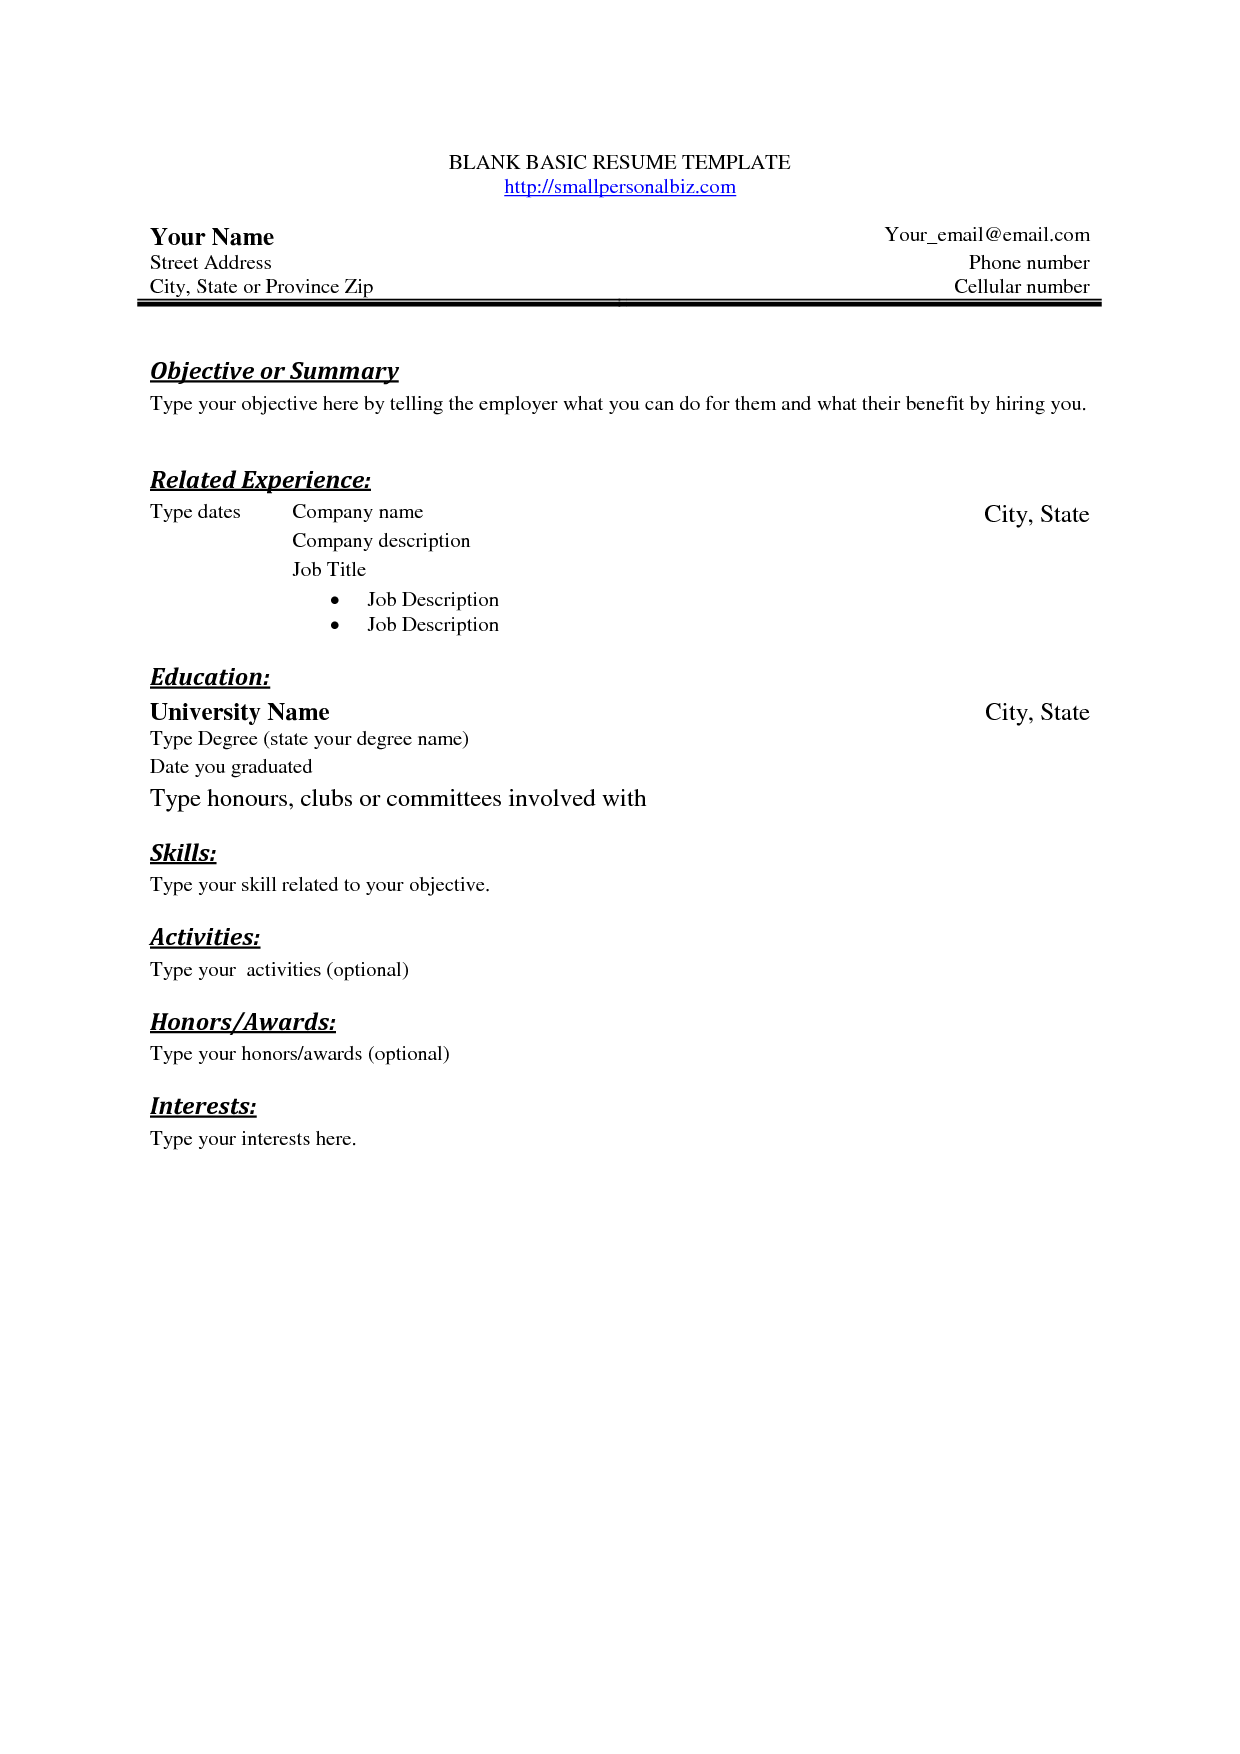 resume Simple Resume Templates free basic blank resume template sample resume